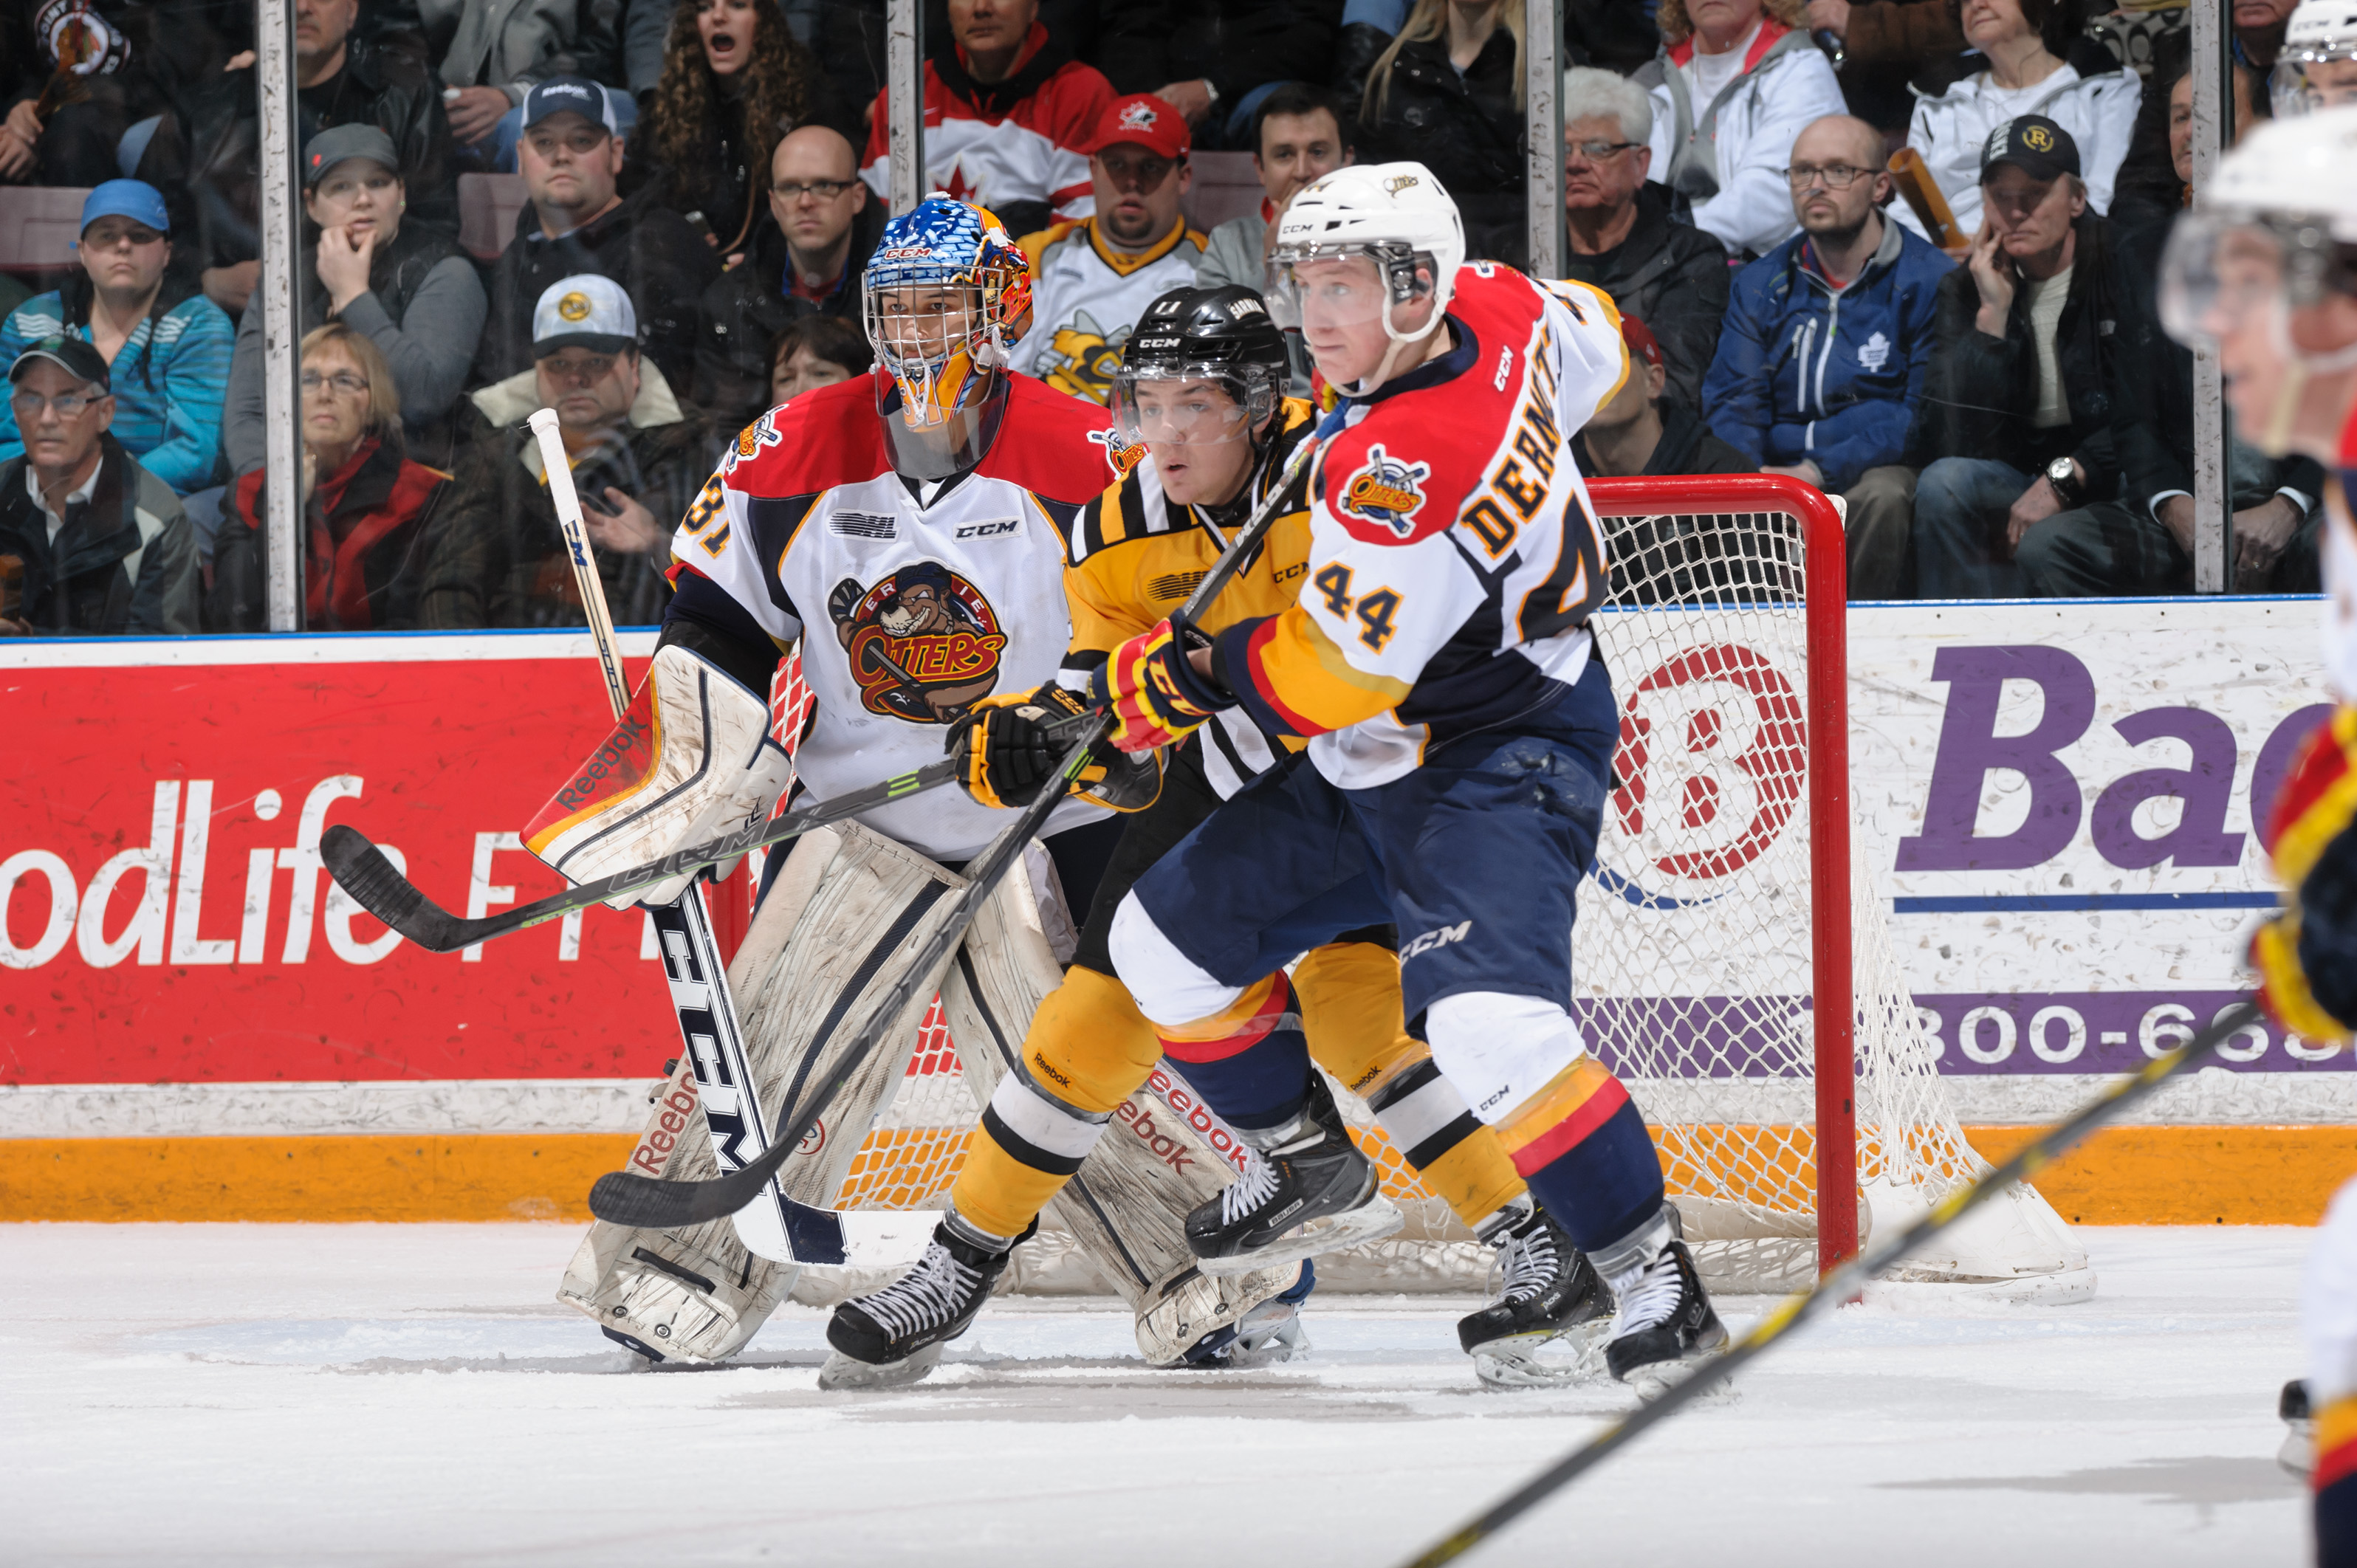 Sting vs Otters, Gm 3, Mar. 29, 2015 (Photo courtesy of Metcalfe Photography)